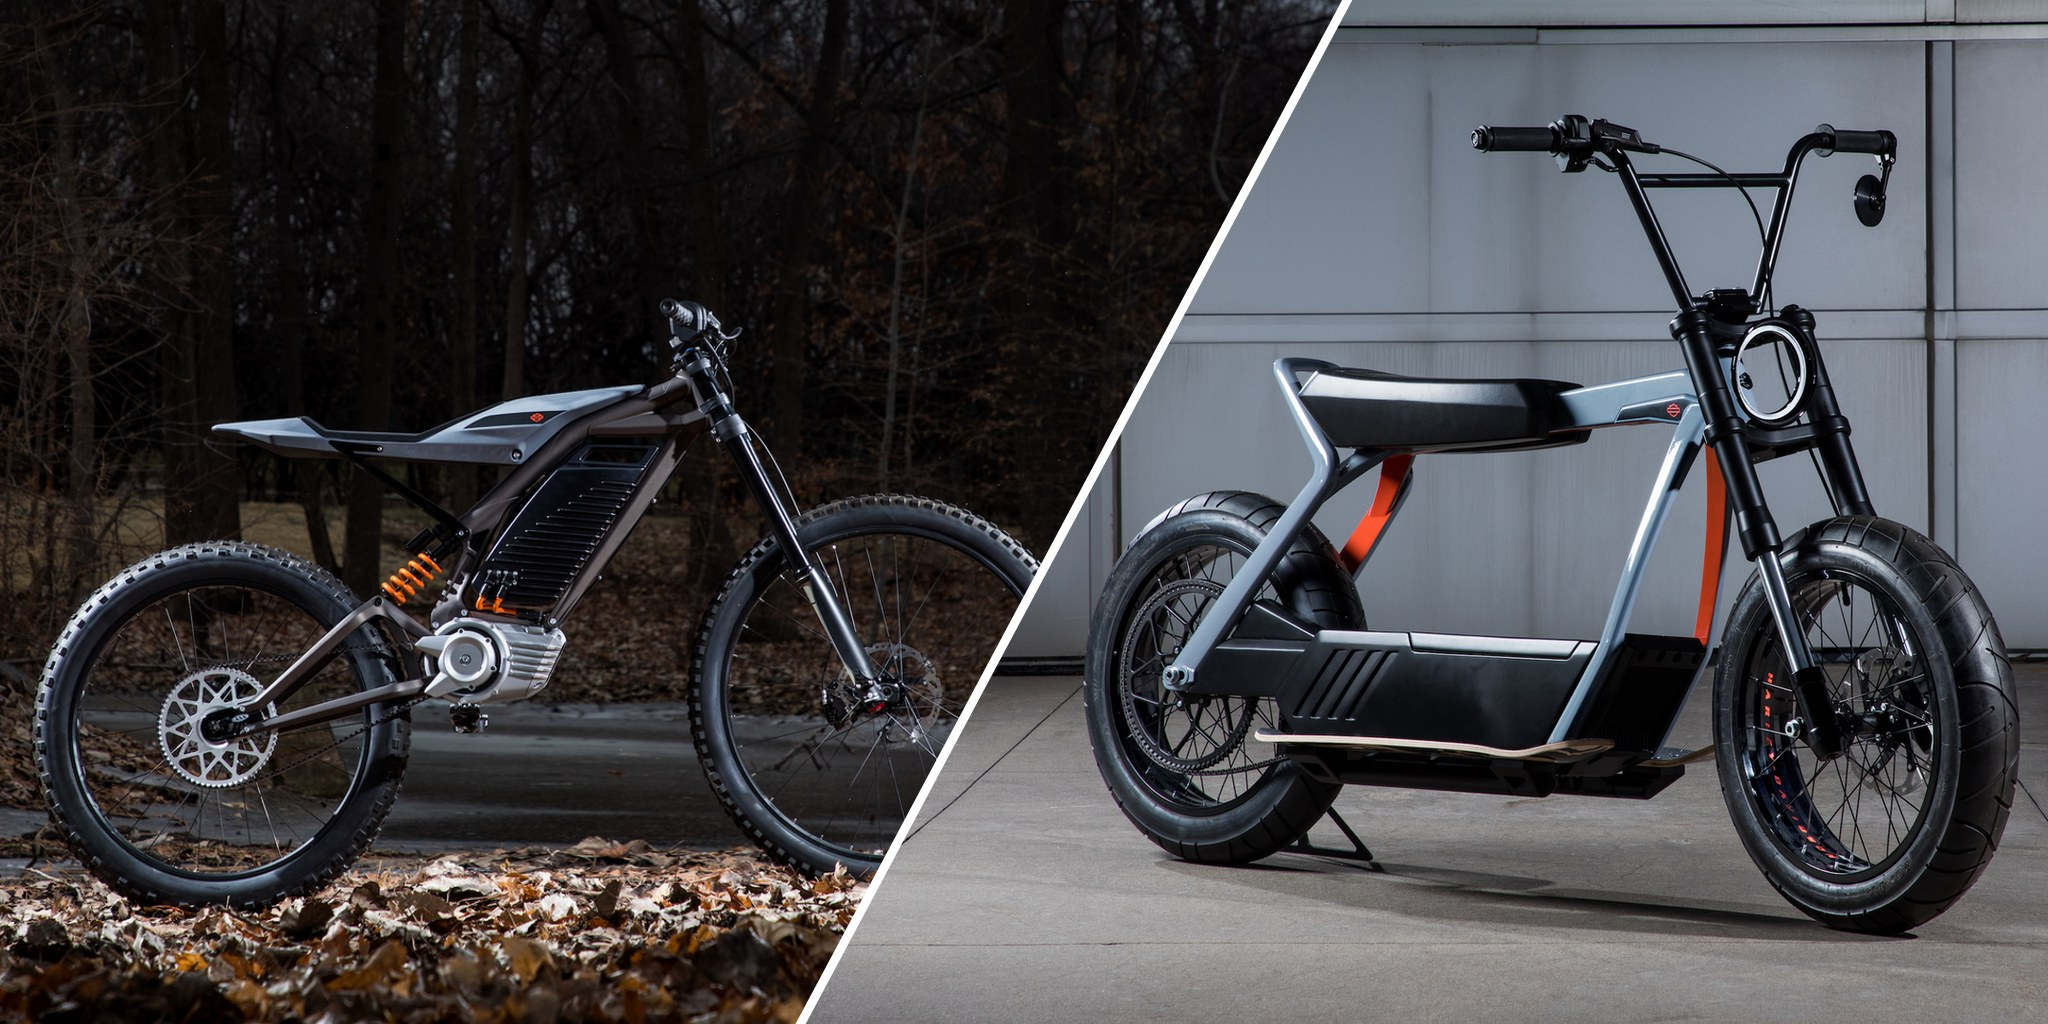 Harley Davidson Tests New Electric Dirt Bike And Scooter